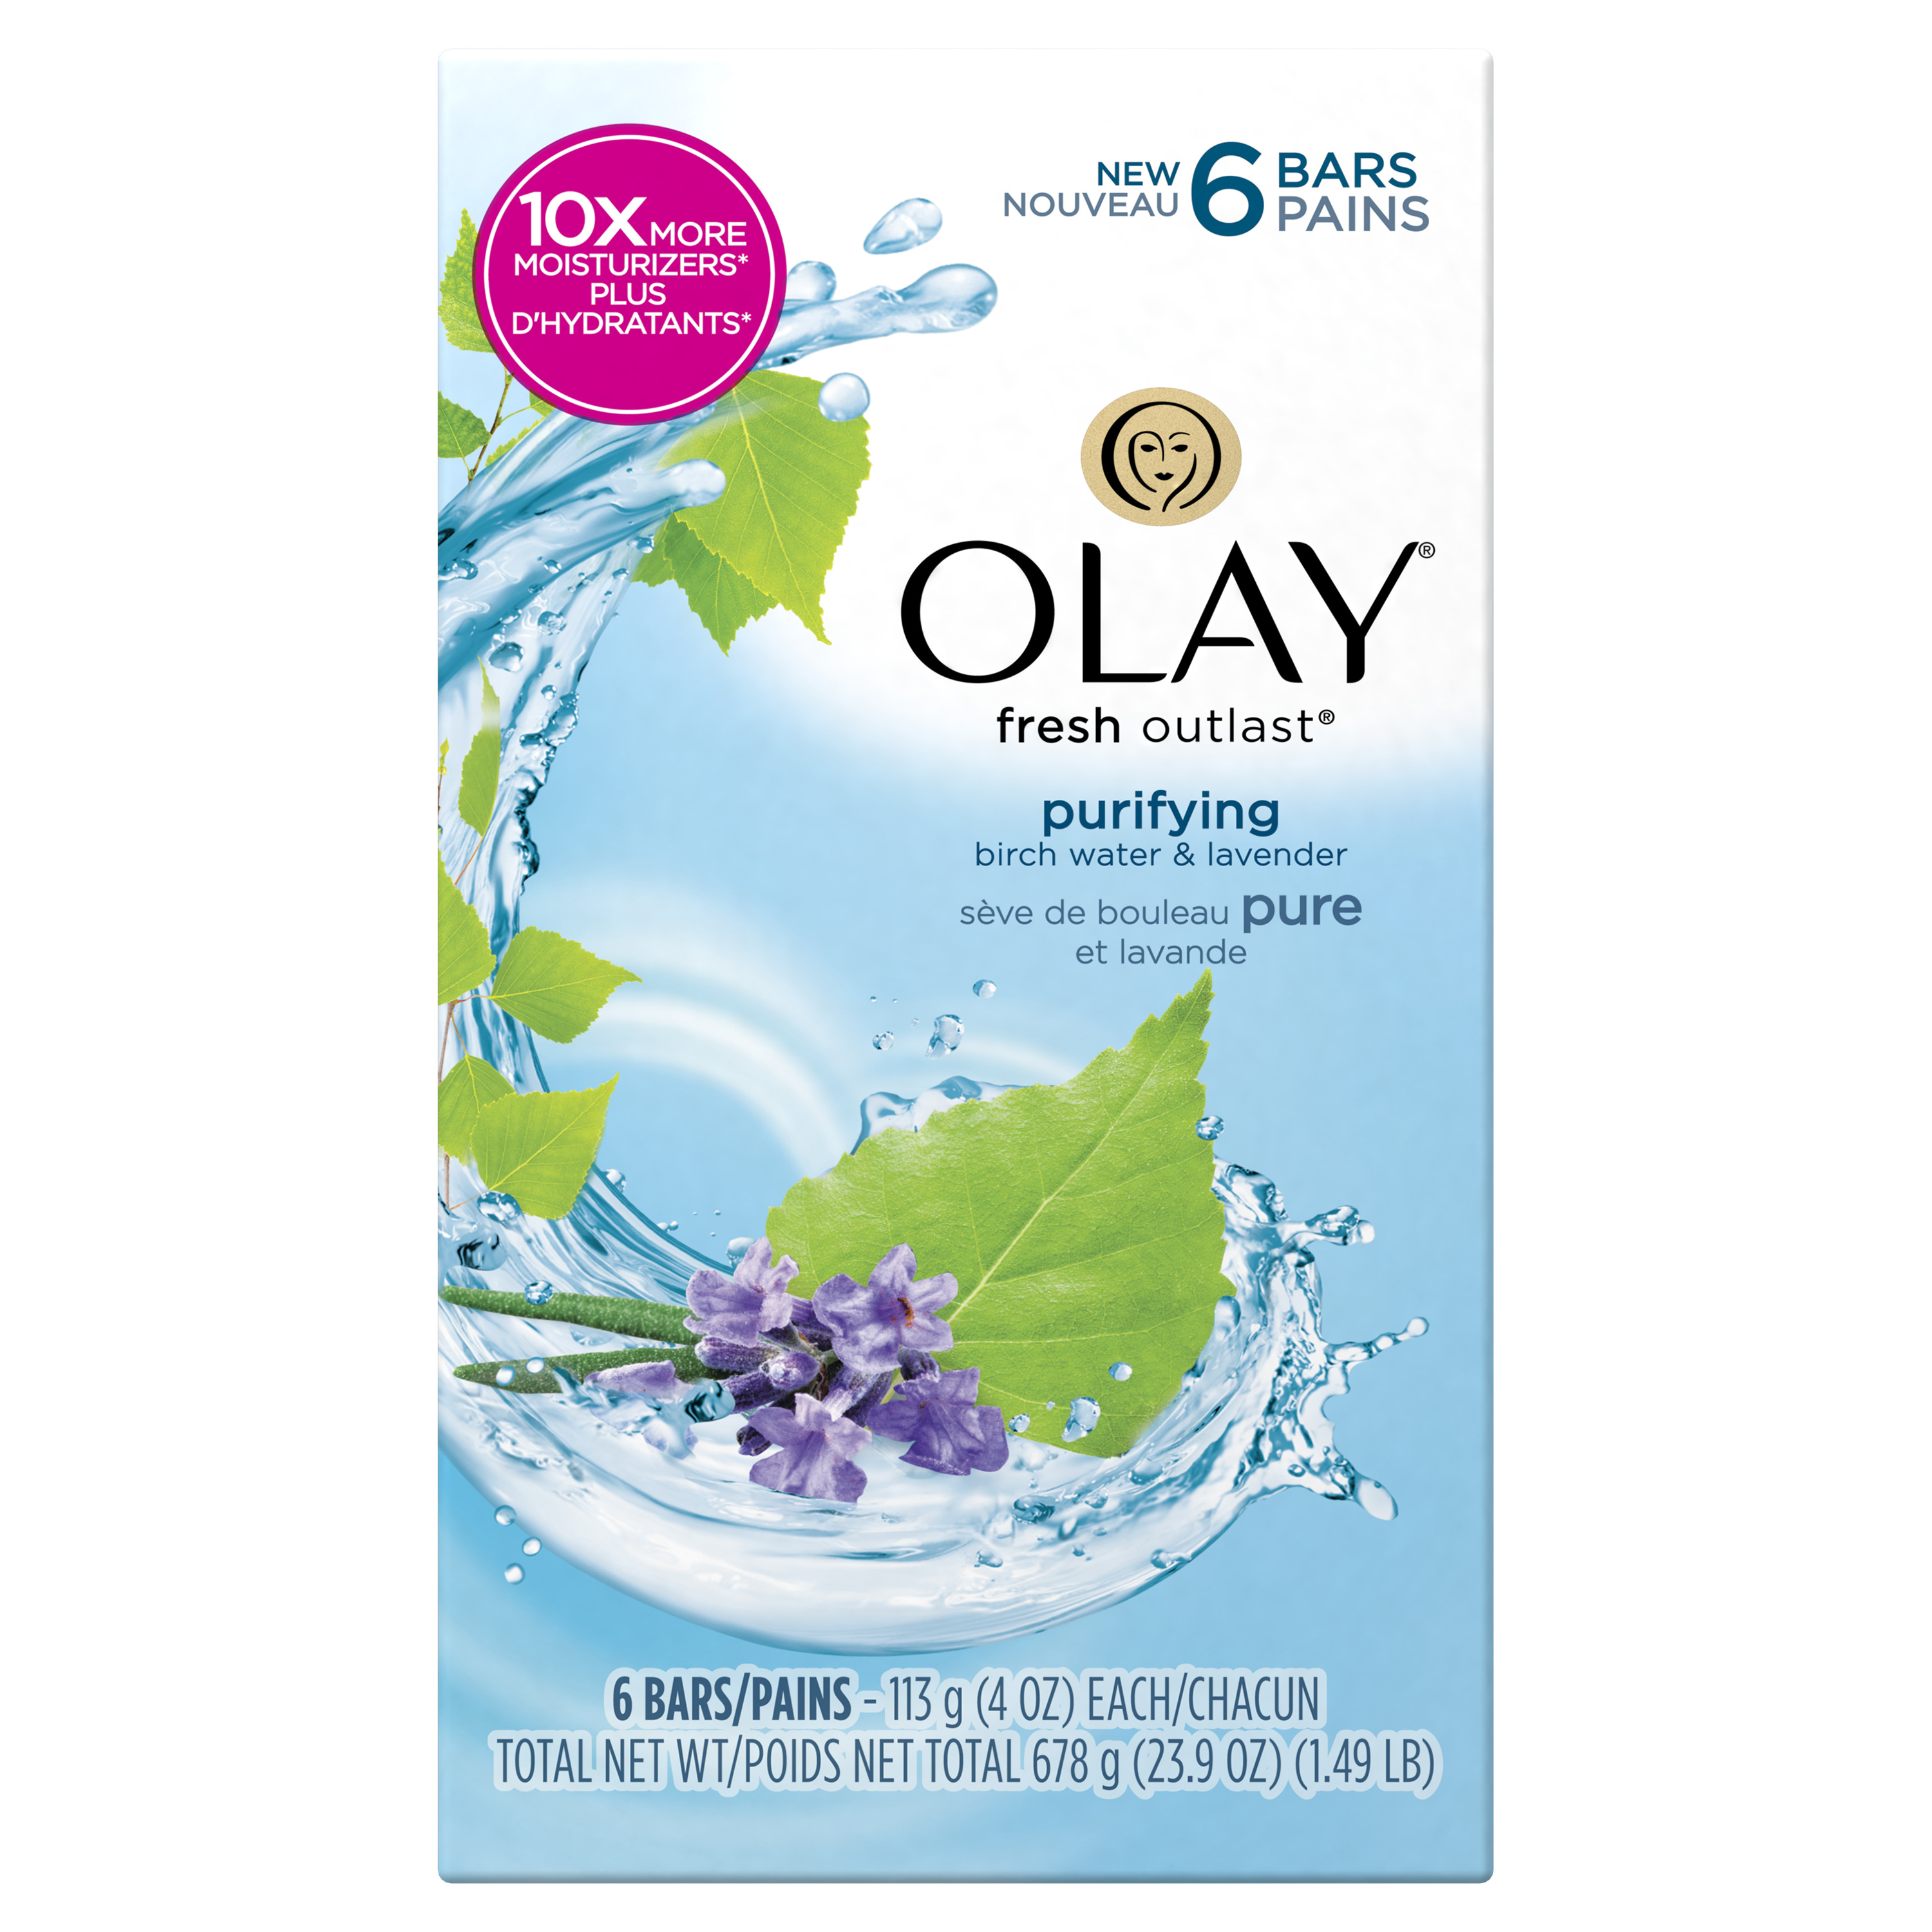 Olay Fresh Outlast Purifying Birch Water & Lavender Beauty Bar 4 oz, 6 count